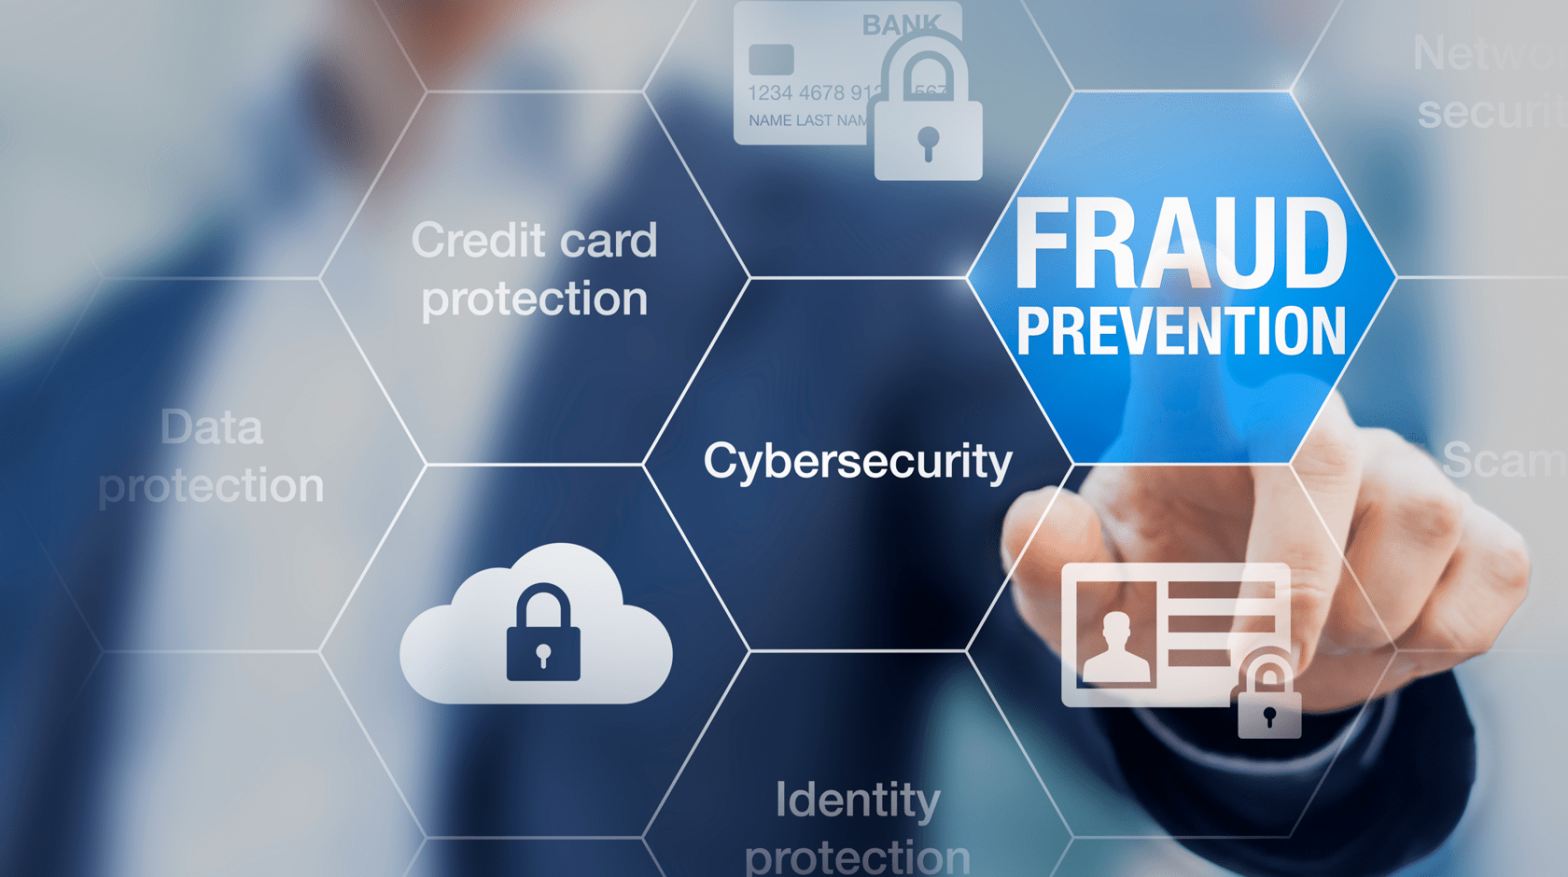 How to Win the Daily Operations Battle With ECommerce Fraud